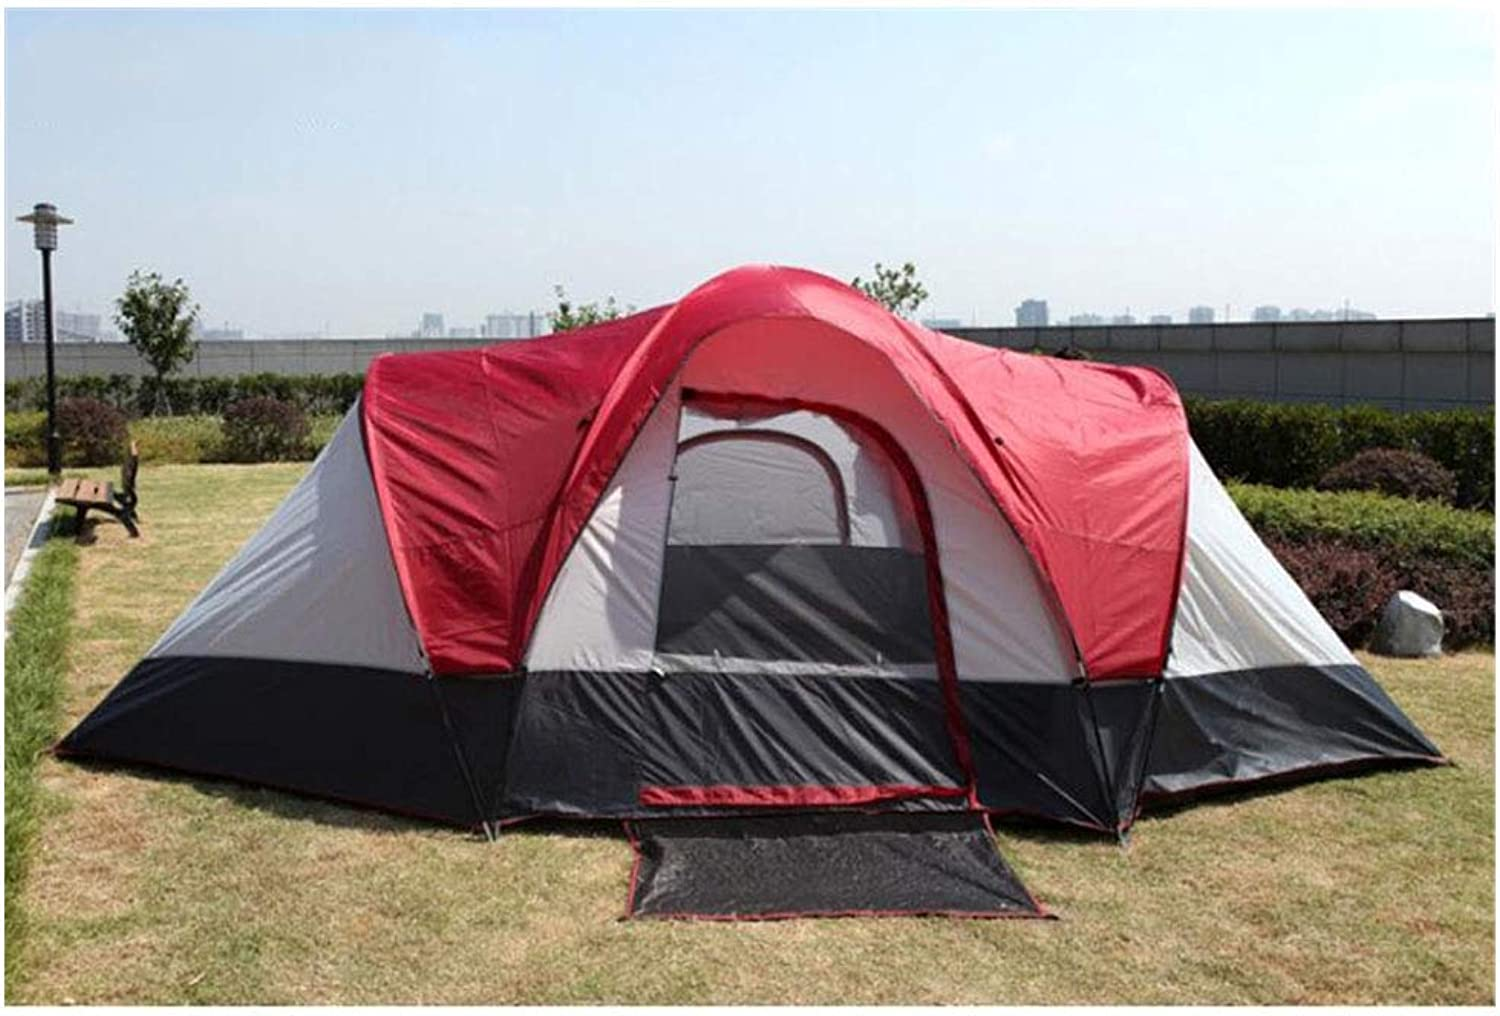 AntiUV,SpaciousTent, 58 People Tent for Family Holiday Large Camping Tents Two Rooms and one Living Room Double Layer Waterproof Travel Tent,1,550  300  198cm